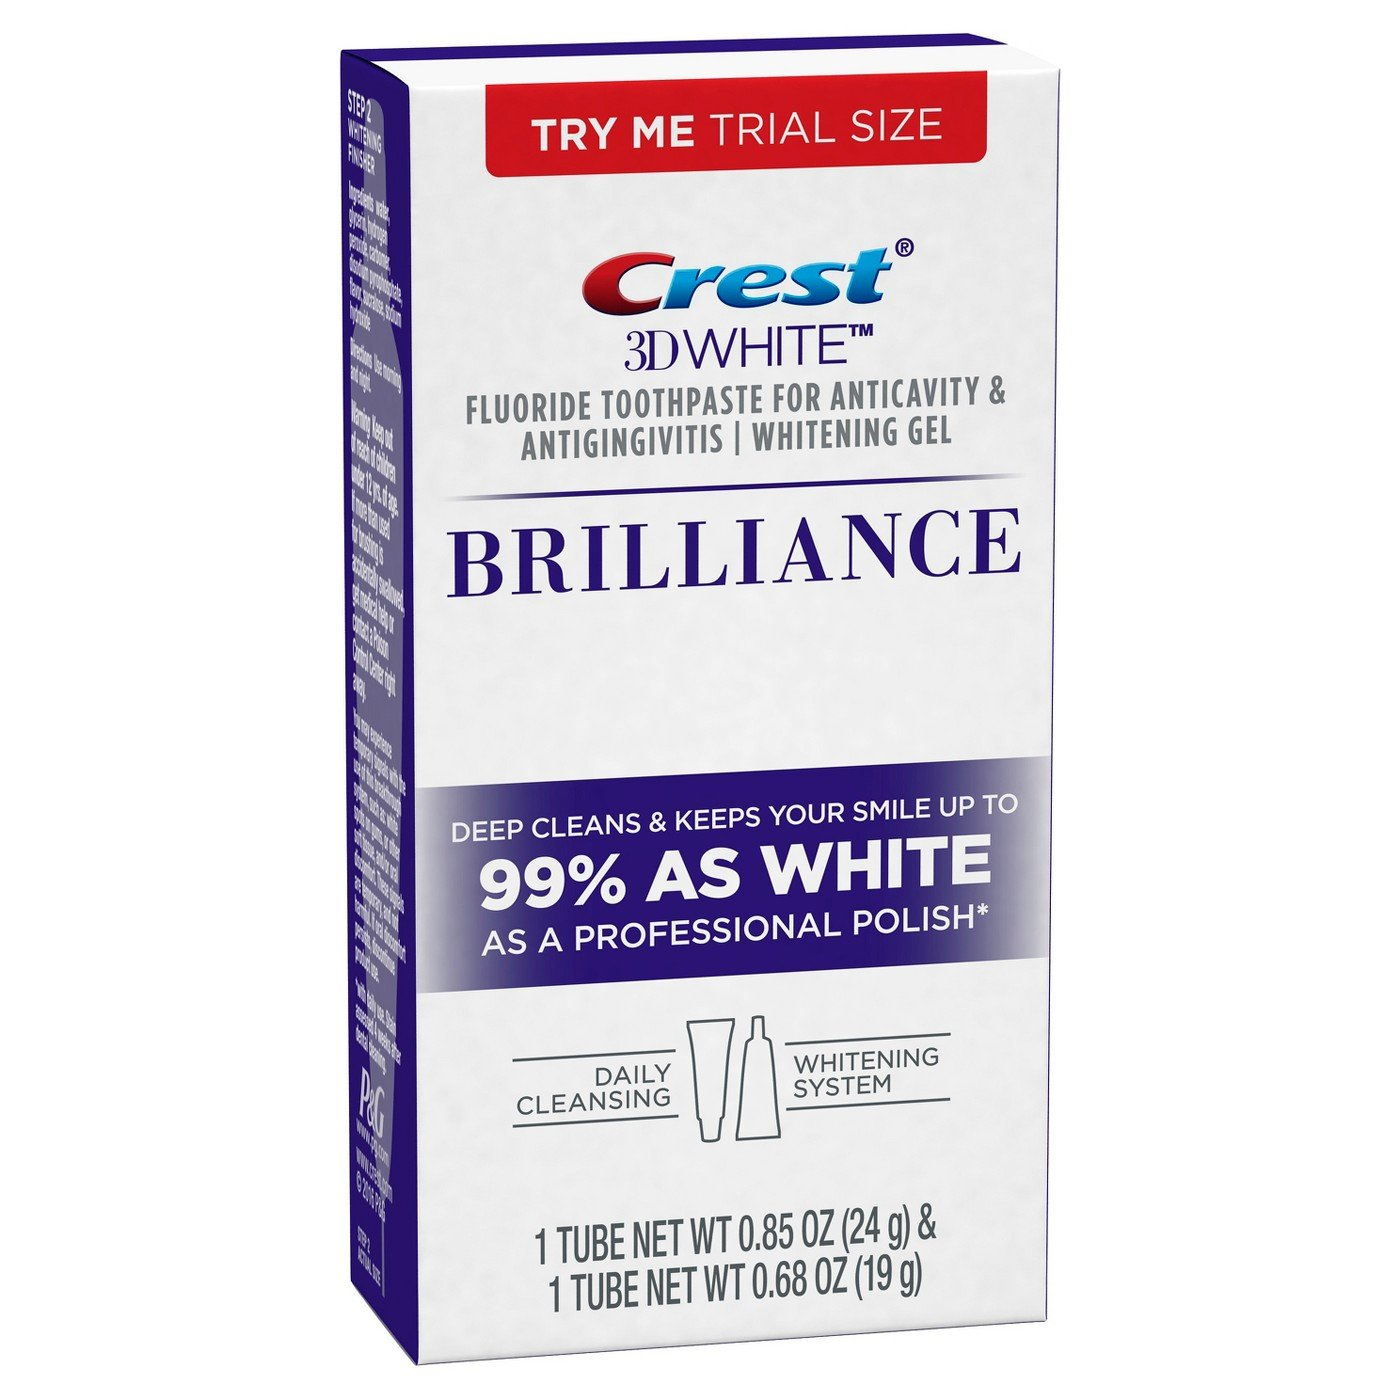 Crest 3d White Brilliance Daily Cleansing Toothpaste and Whitening Gel System .85 and .68 Oz, 0.13 Pound